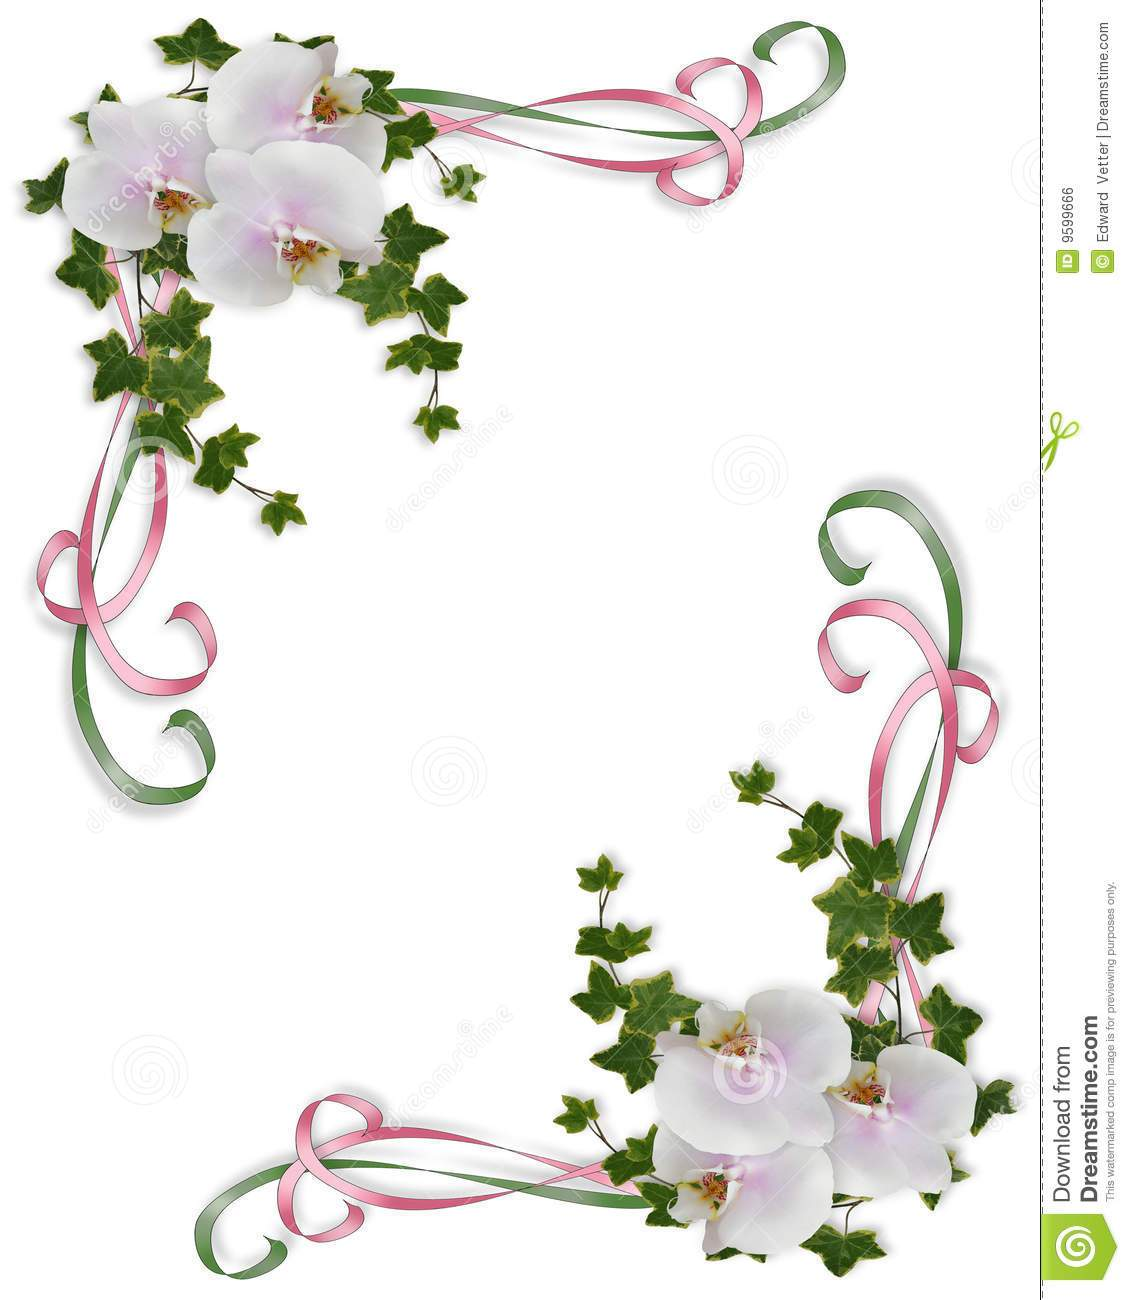 Orchid border clipart banner library library Orchid clipart border 3 » Clipart Portal banner library library